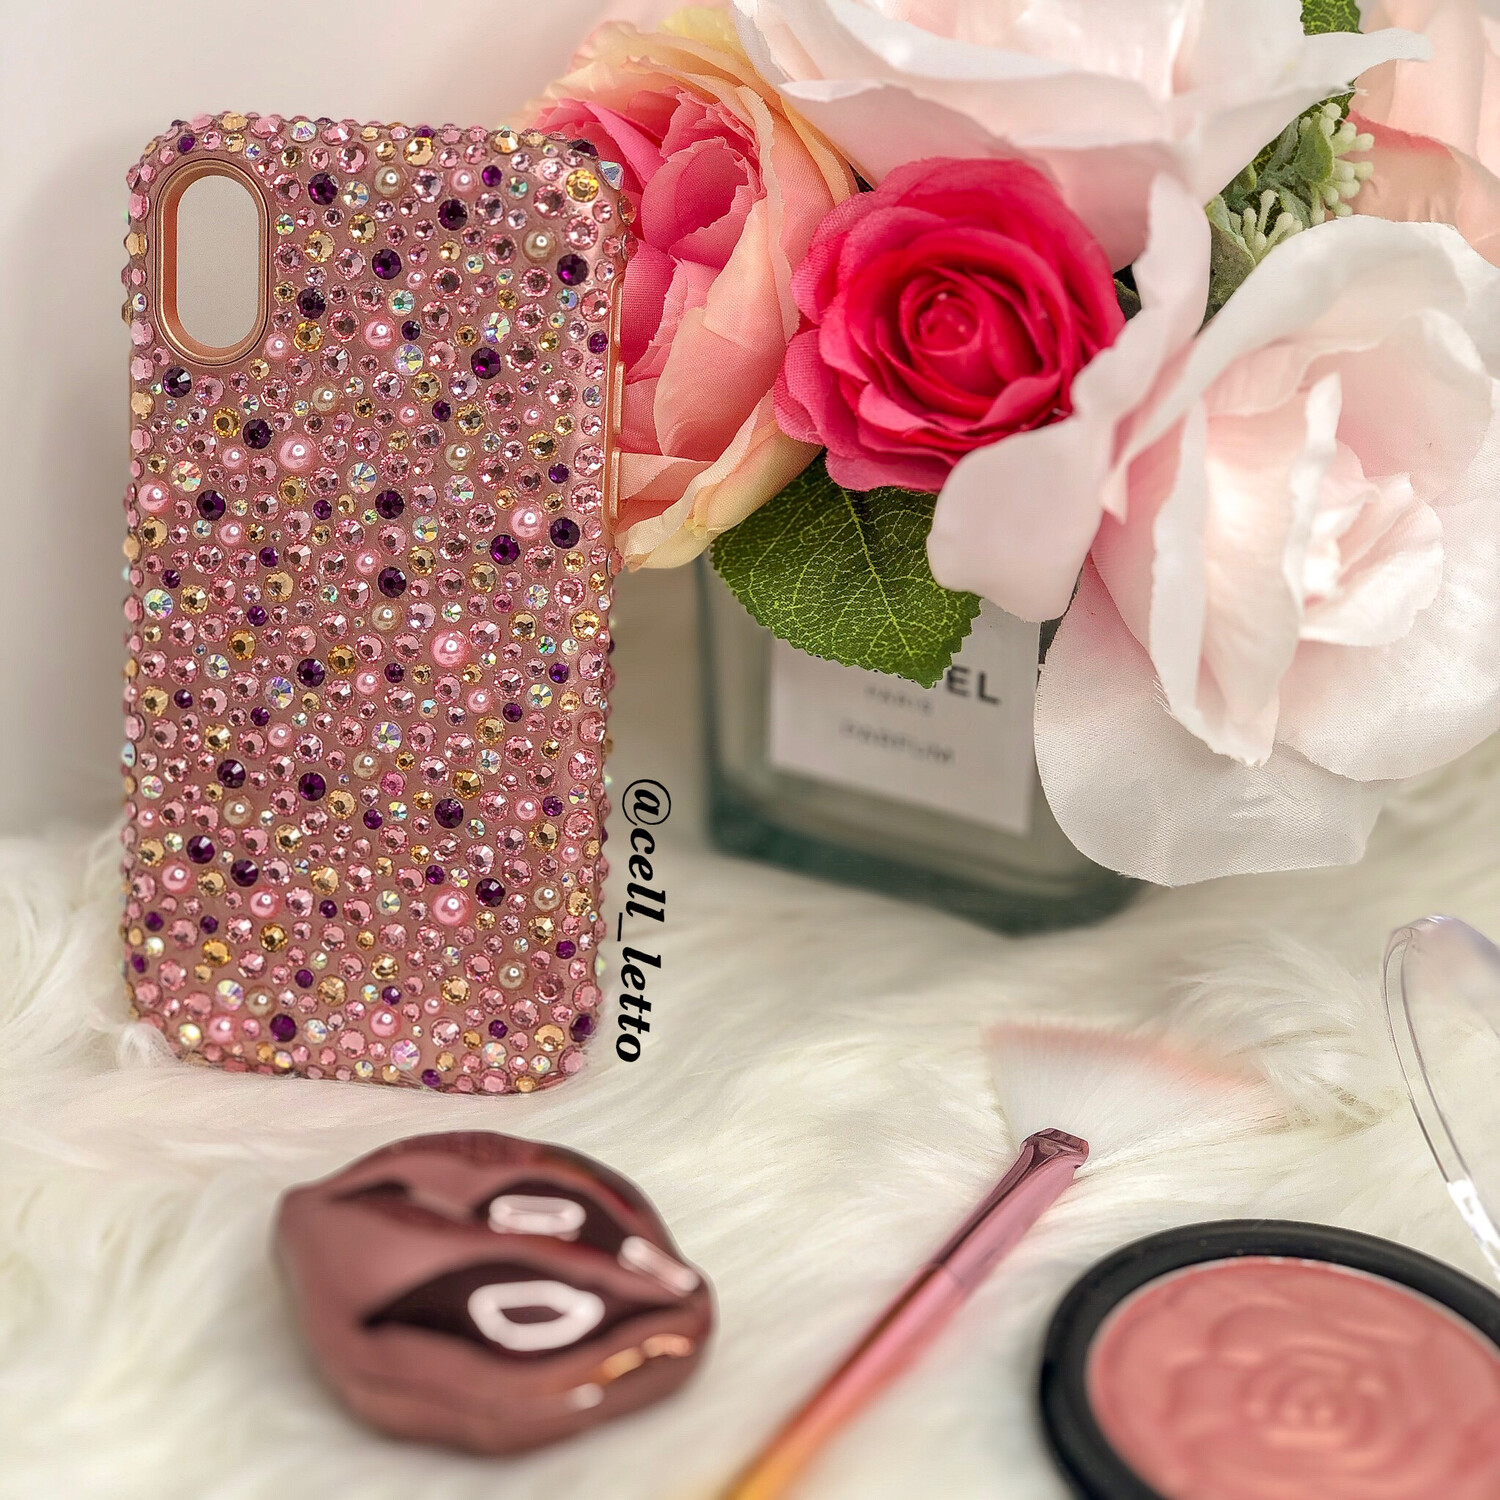 Customized iPhone Cases Starting At